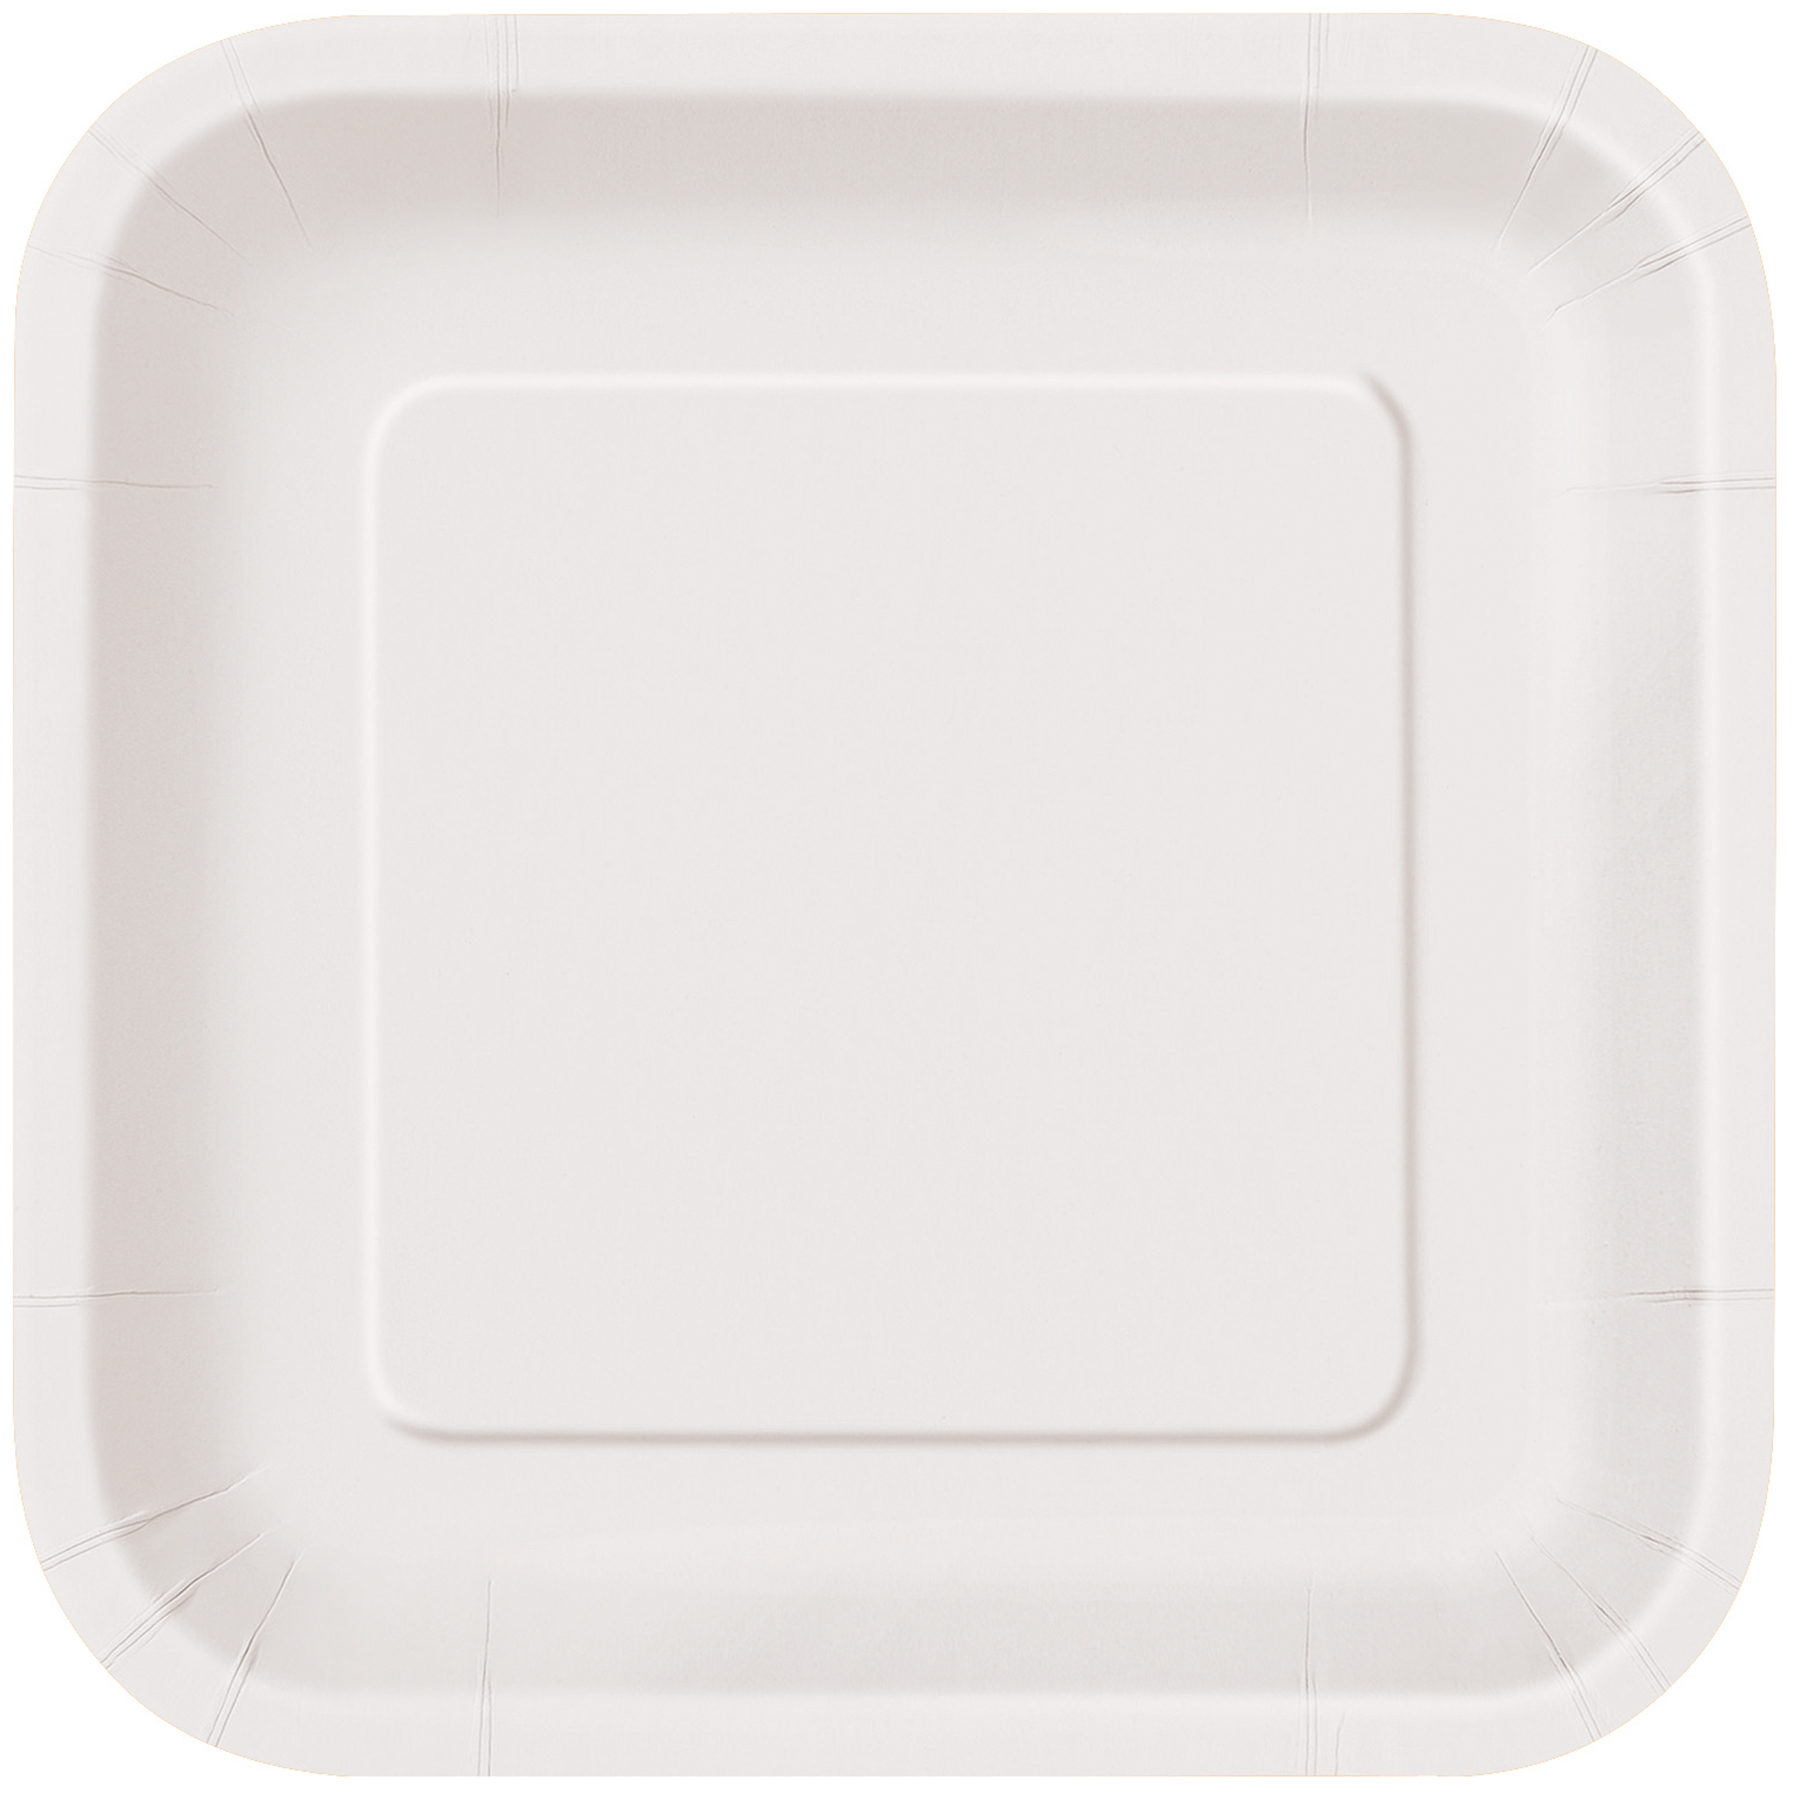 9  Square White Dinner Plates ...  sc 1 st  Michaels Stores & Square White Paper Dinner Party Plates